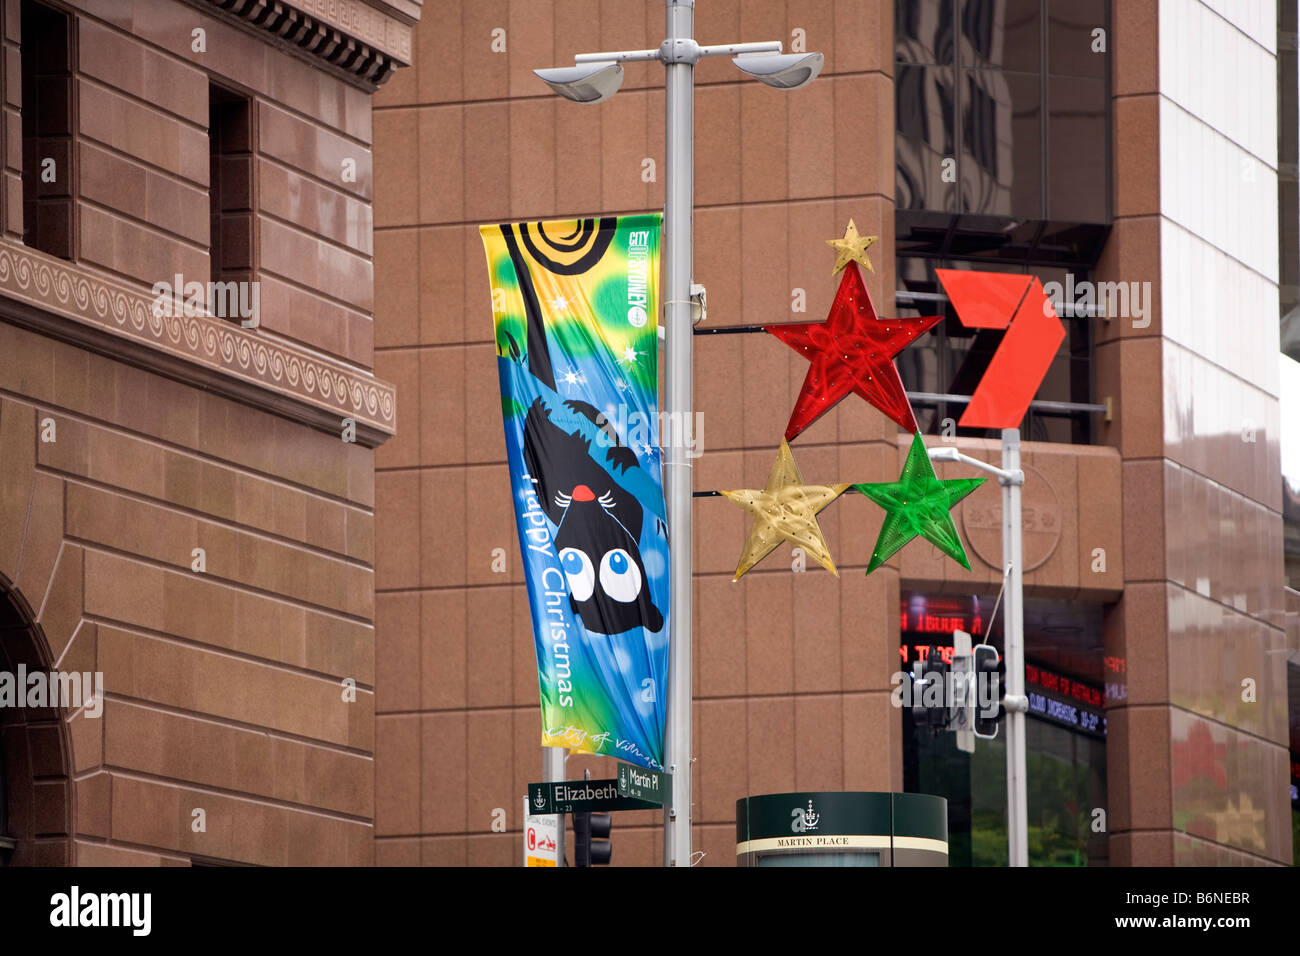 Happy Christmas Banners Outside Channel 7 Officesmartin Placesydney Australia